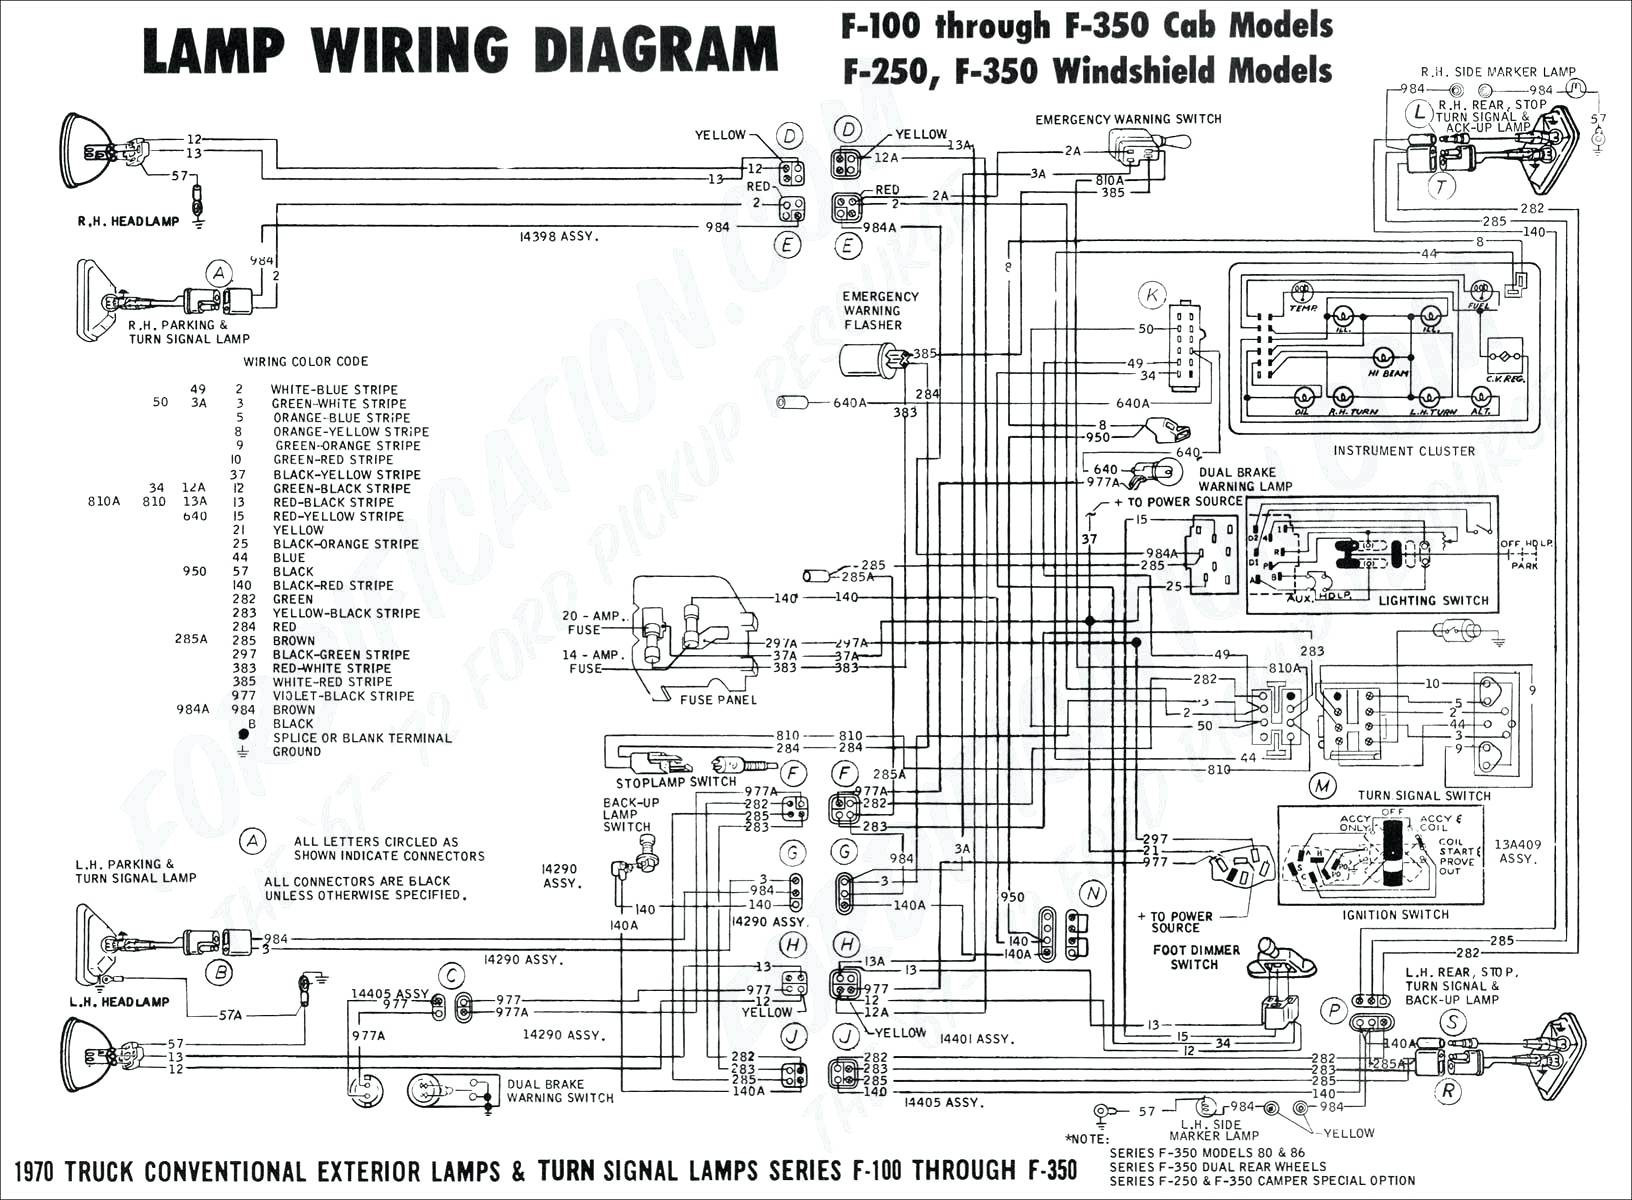 2003 Ford Expedition Cargo Rack – Simple Wiring Diagram - Ford Expedition Trailer Wiring Diagram